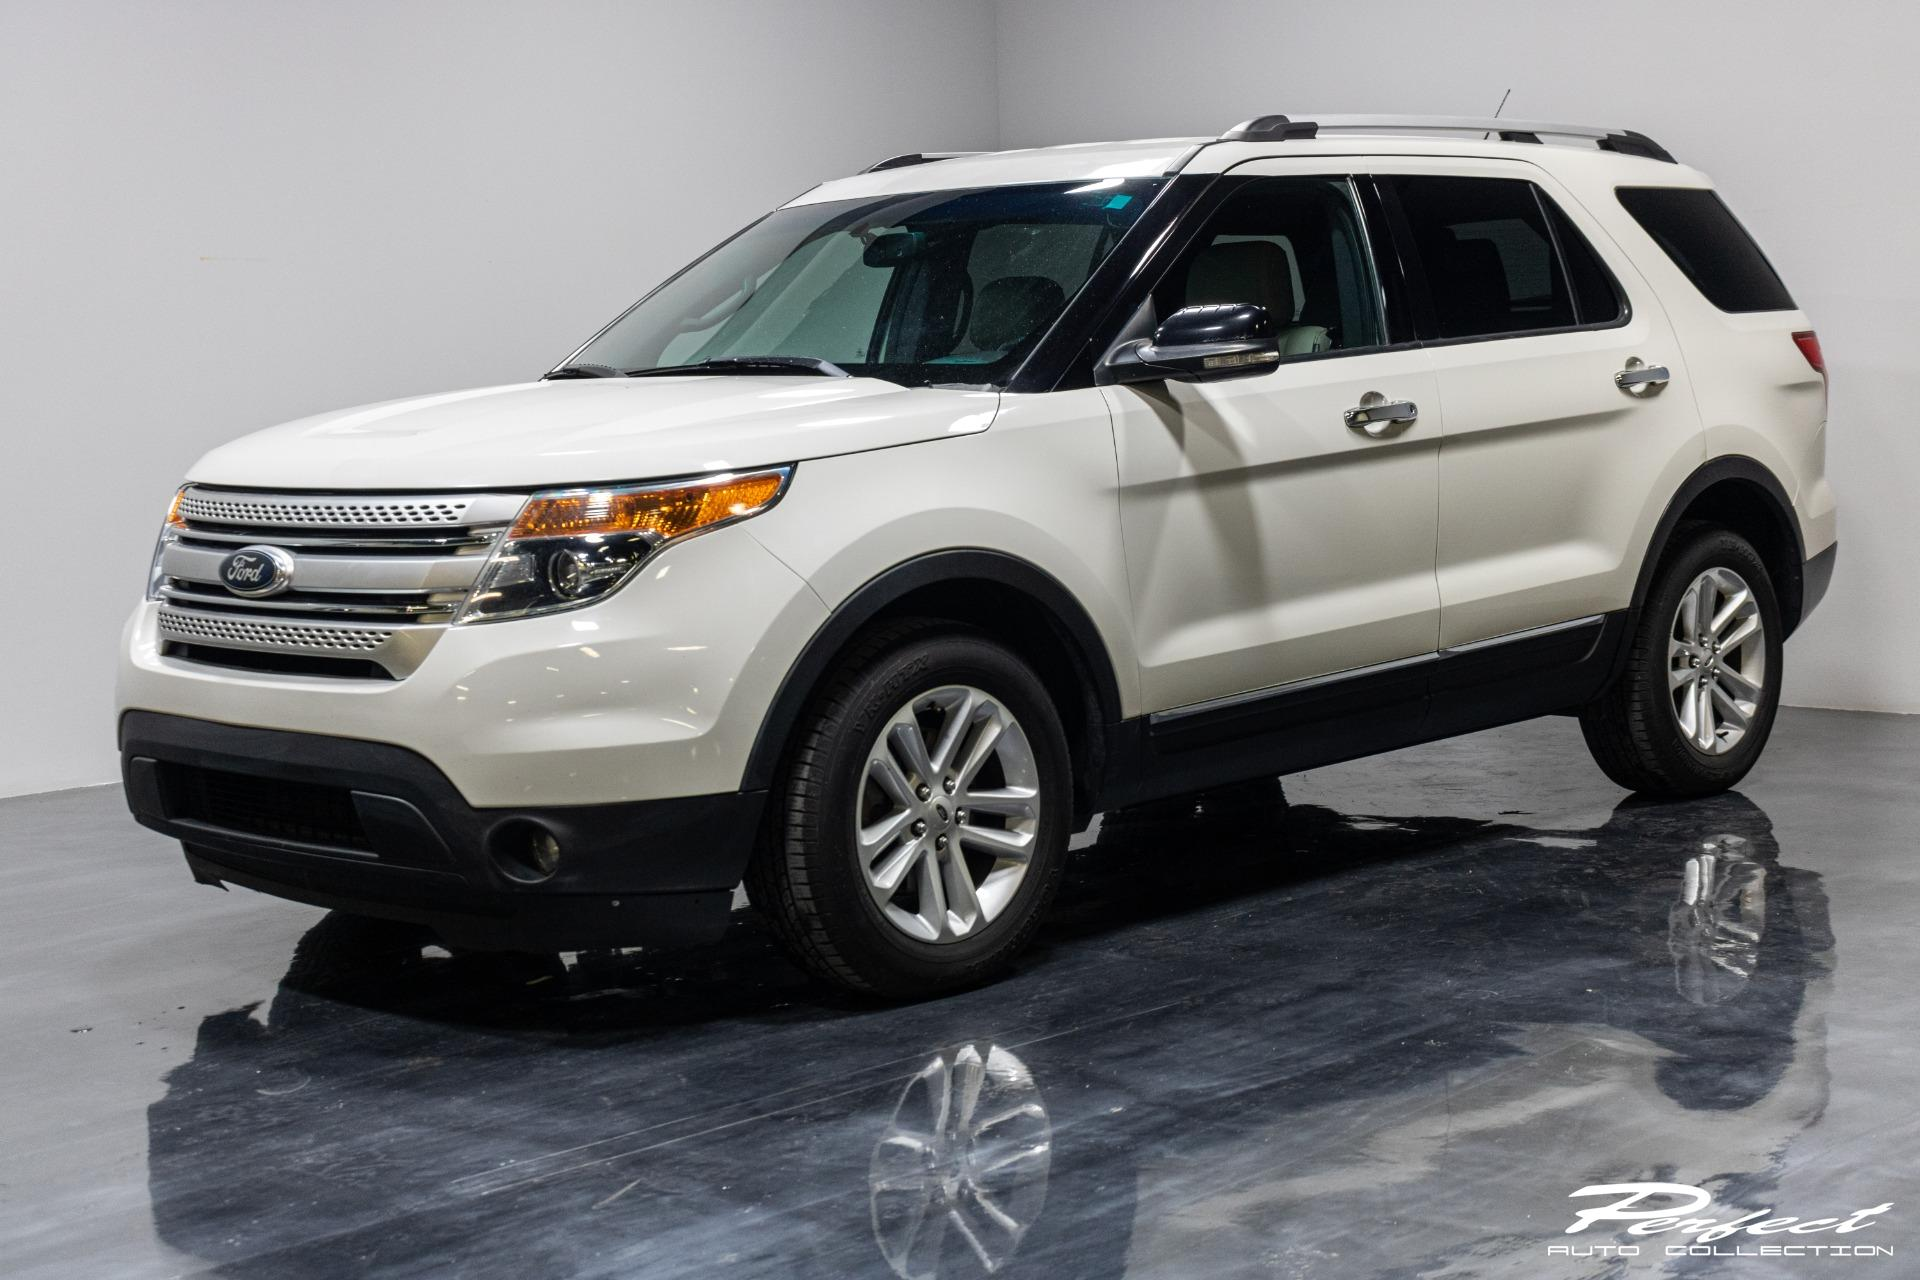 Used 2012 Ford Explorer XLT for sale Sold at Perfect Auto Collection in Akron OH 44310 1